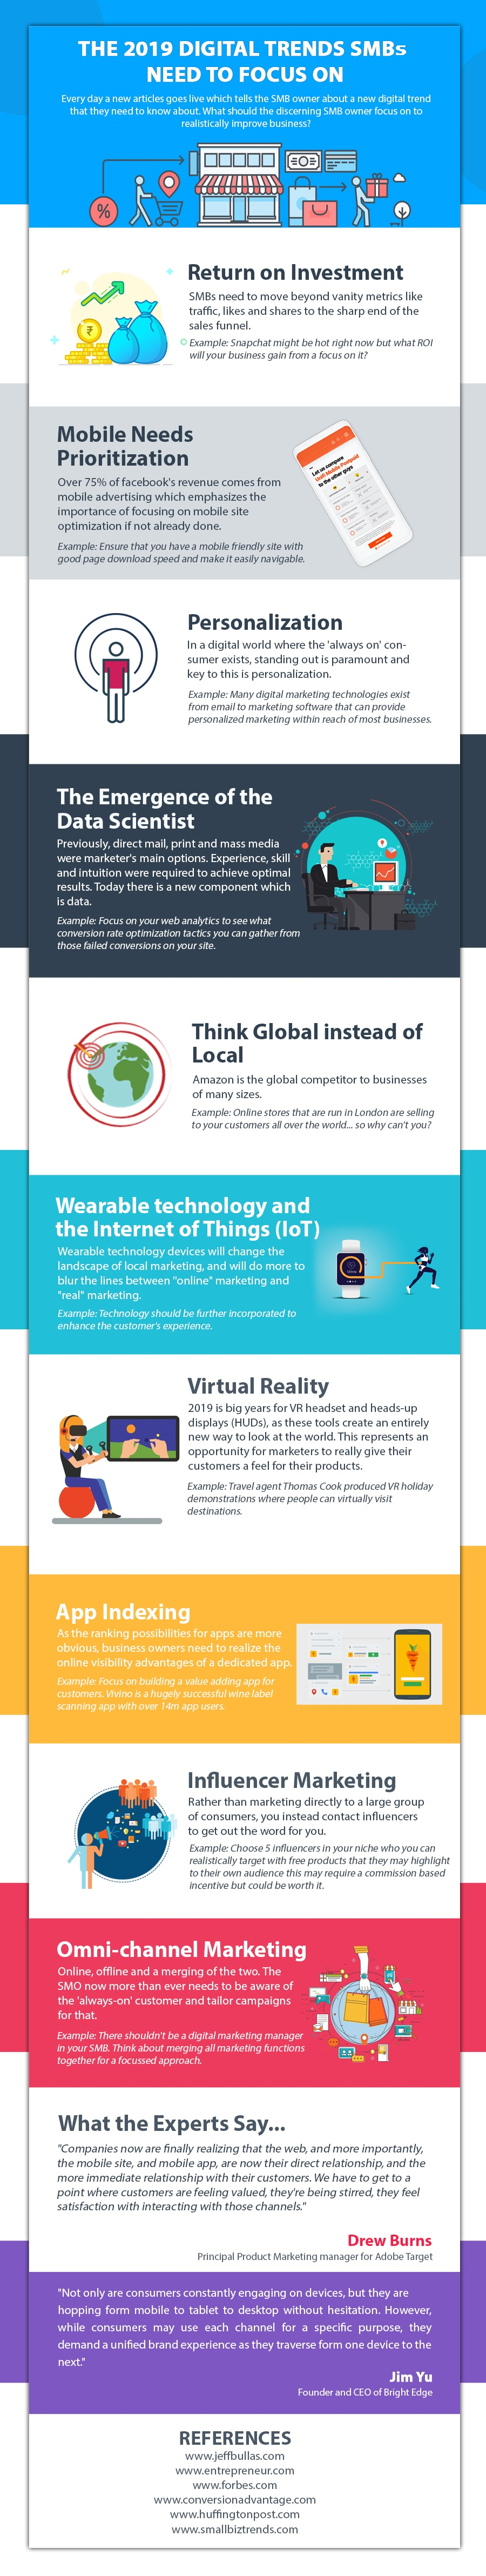 Digital Trends 2019 What Smbs Need To Know Infographic Irish Tech News